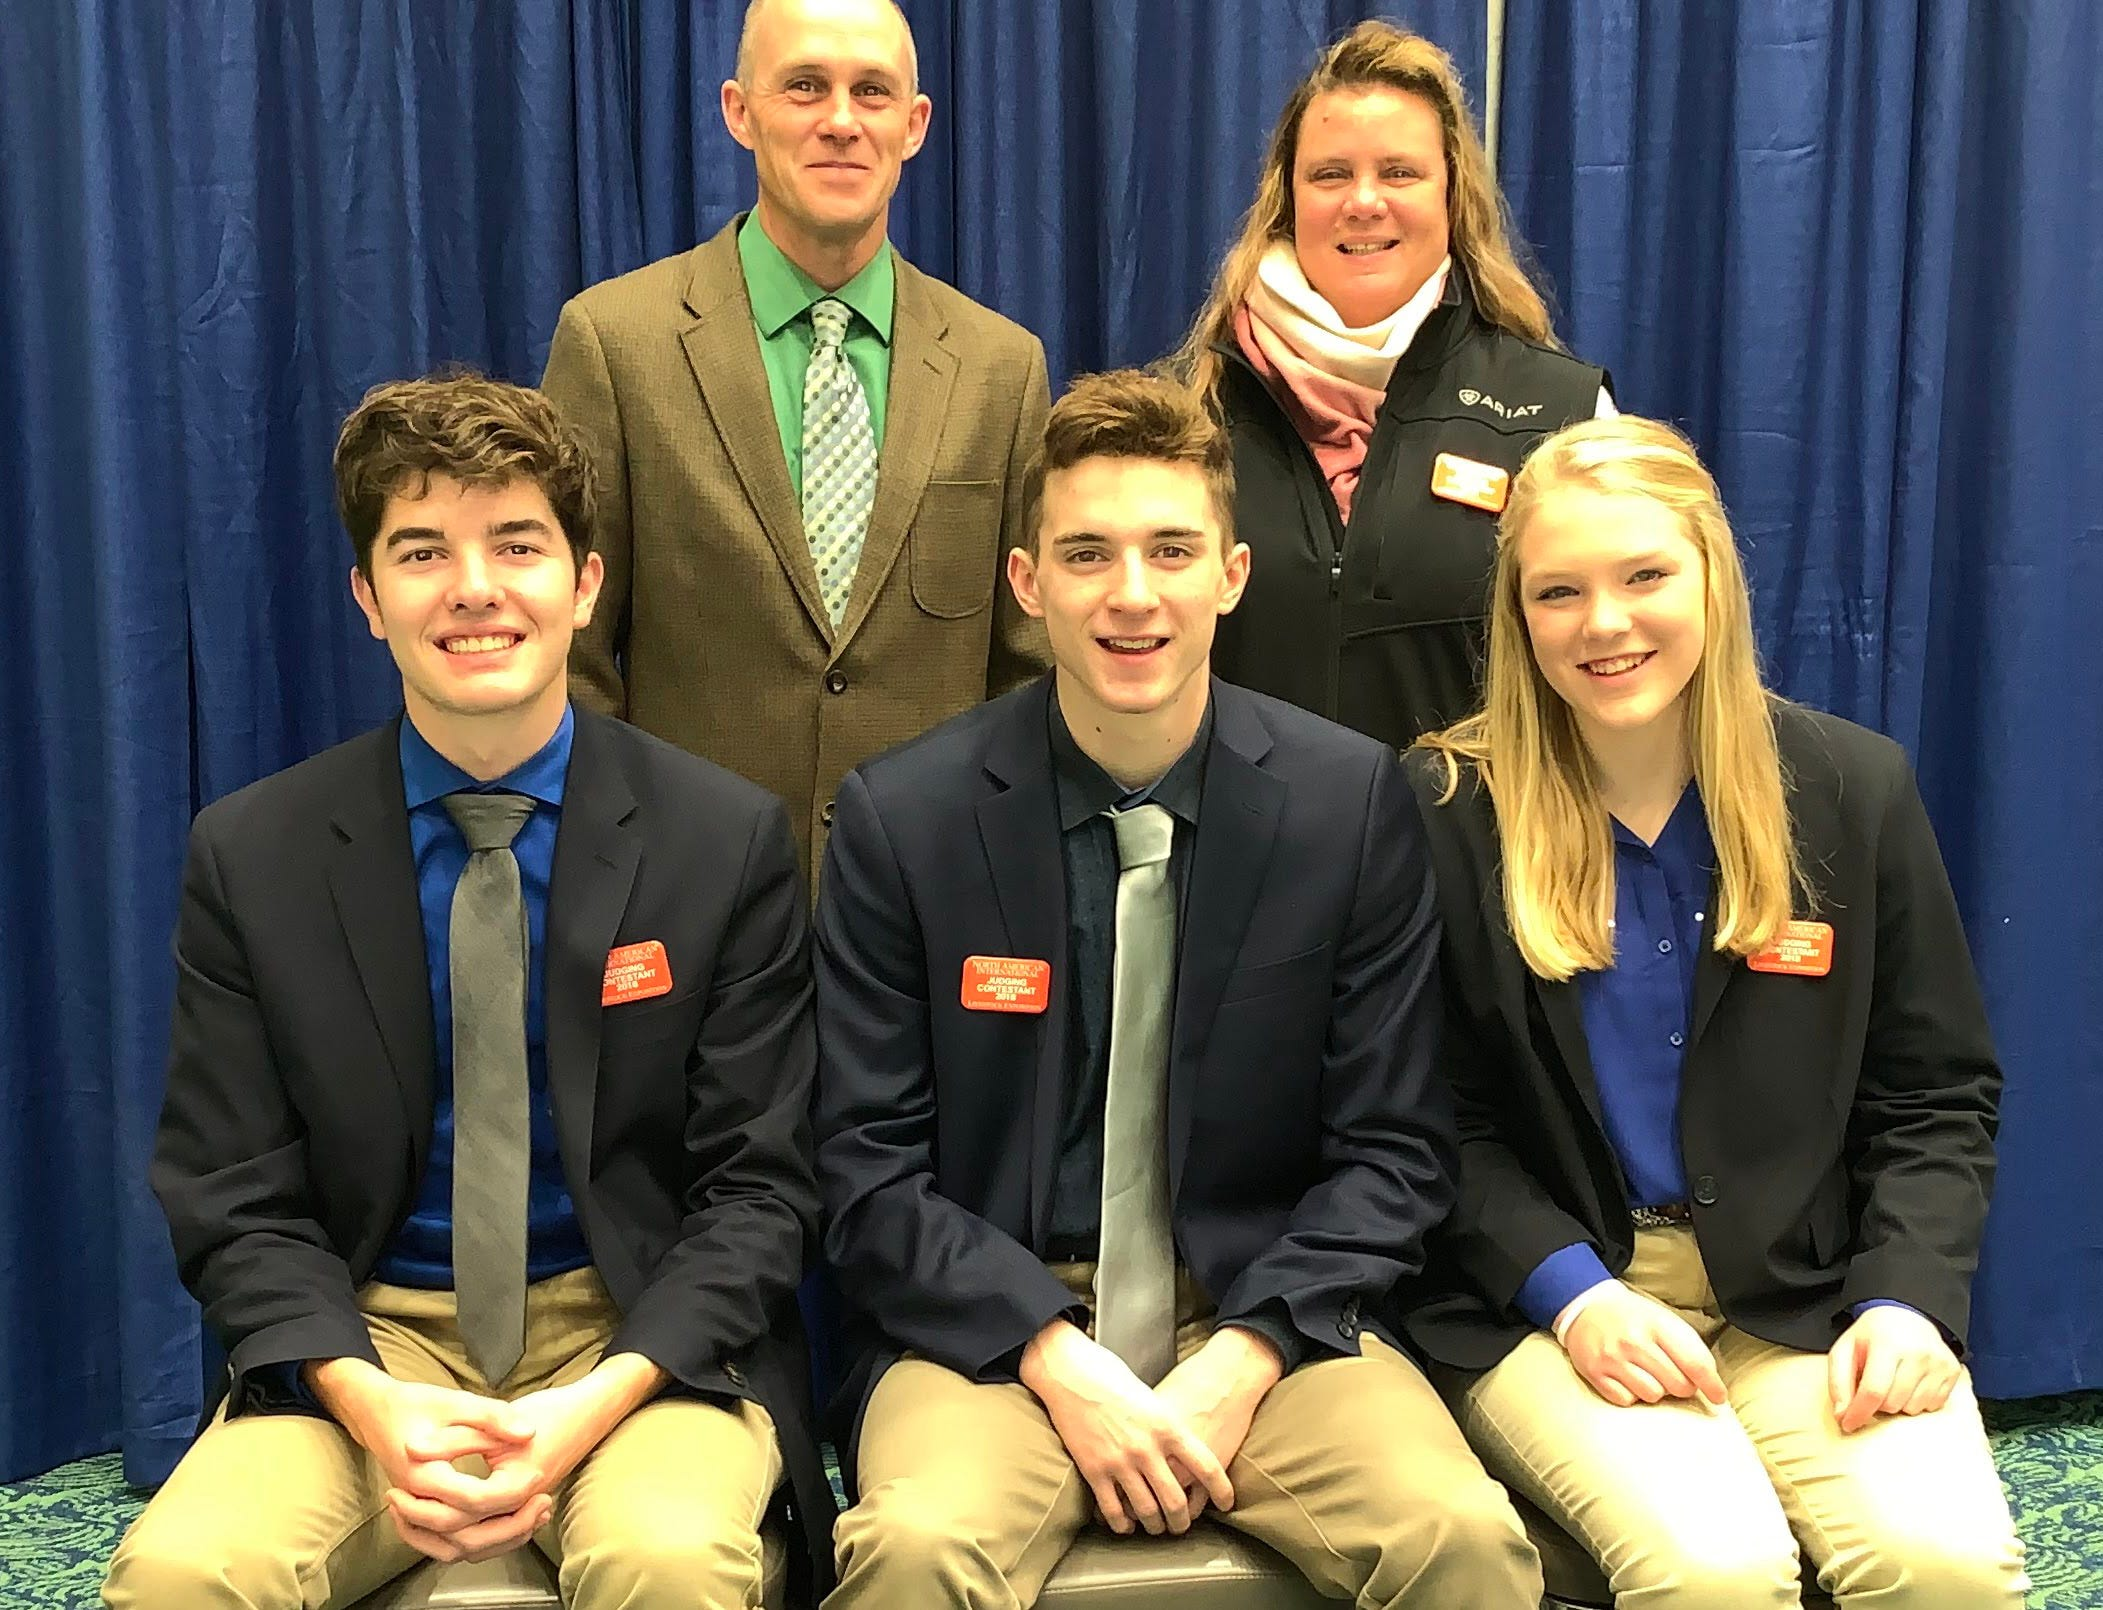 Iowa County 4-H Livestock Judging team is comprised of (from left) Brady Palzkill, Brandon Spring and Morgan Vondra. Coaches for the team are (back row from left) Mike Robinson and Lora Springer.